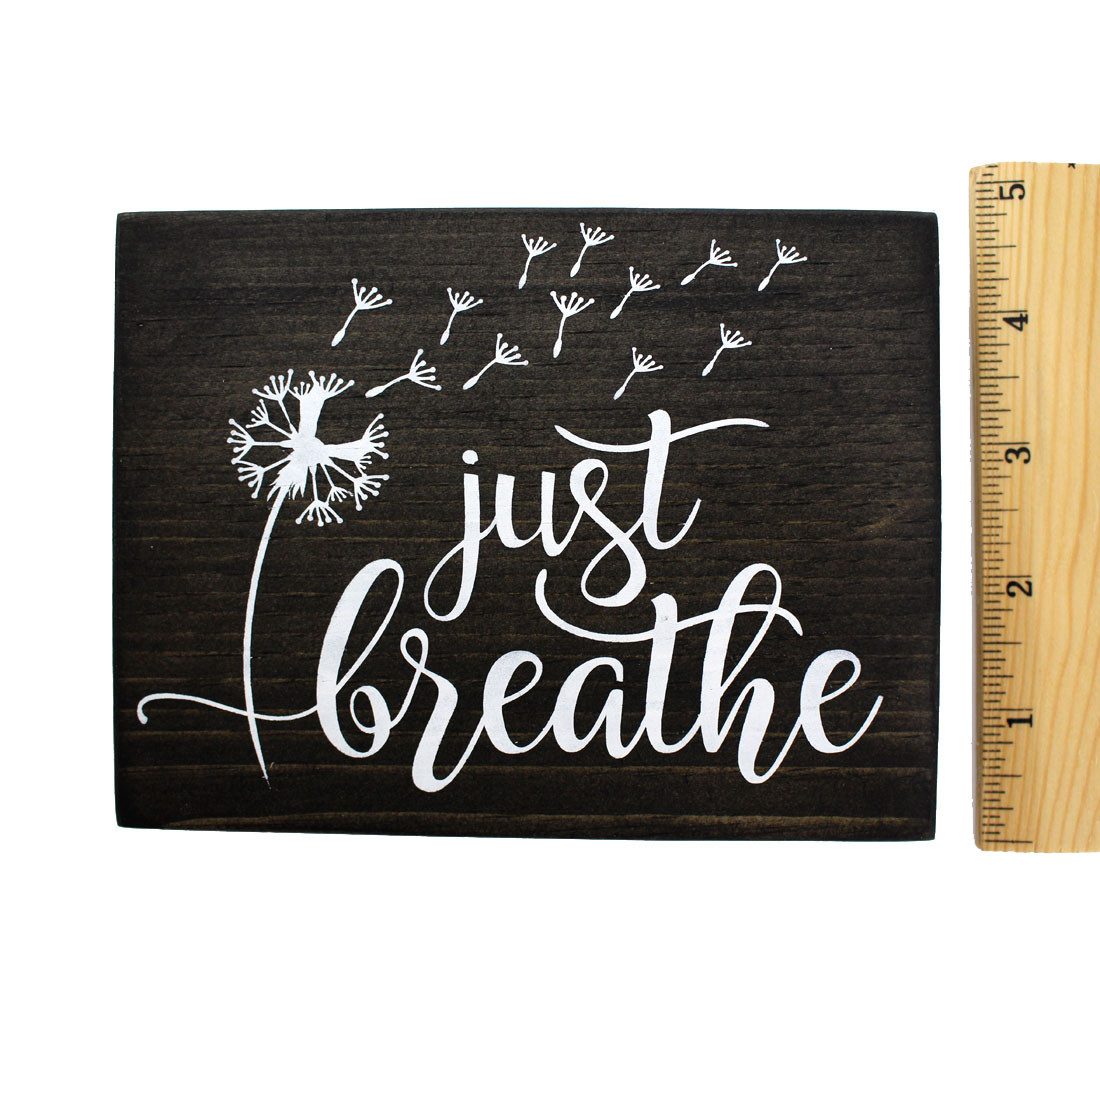 Frontside and ruler of Just Breathe wooden sign.